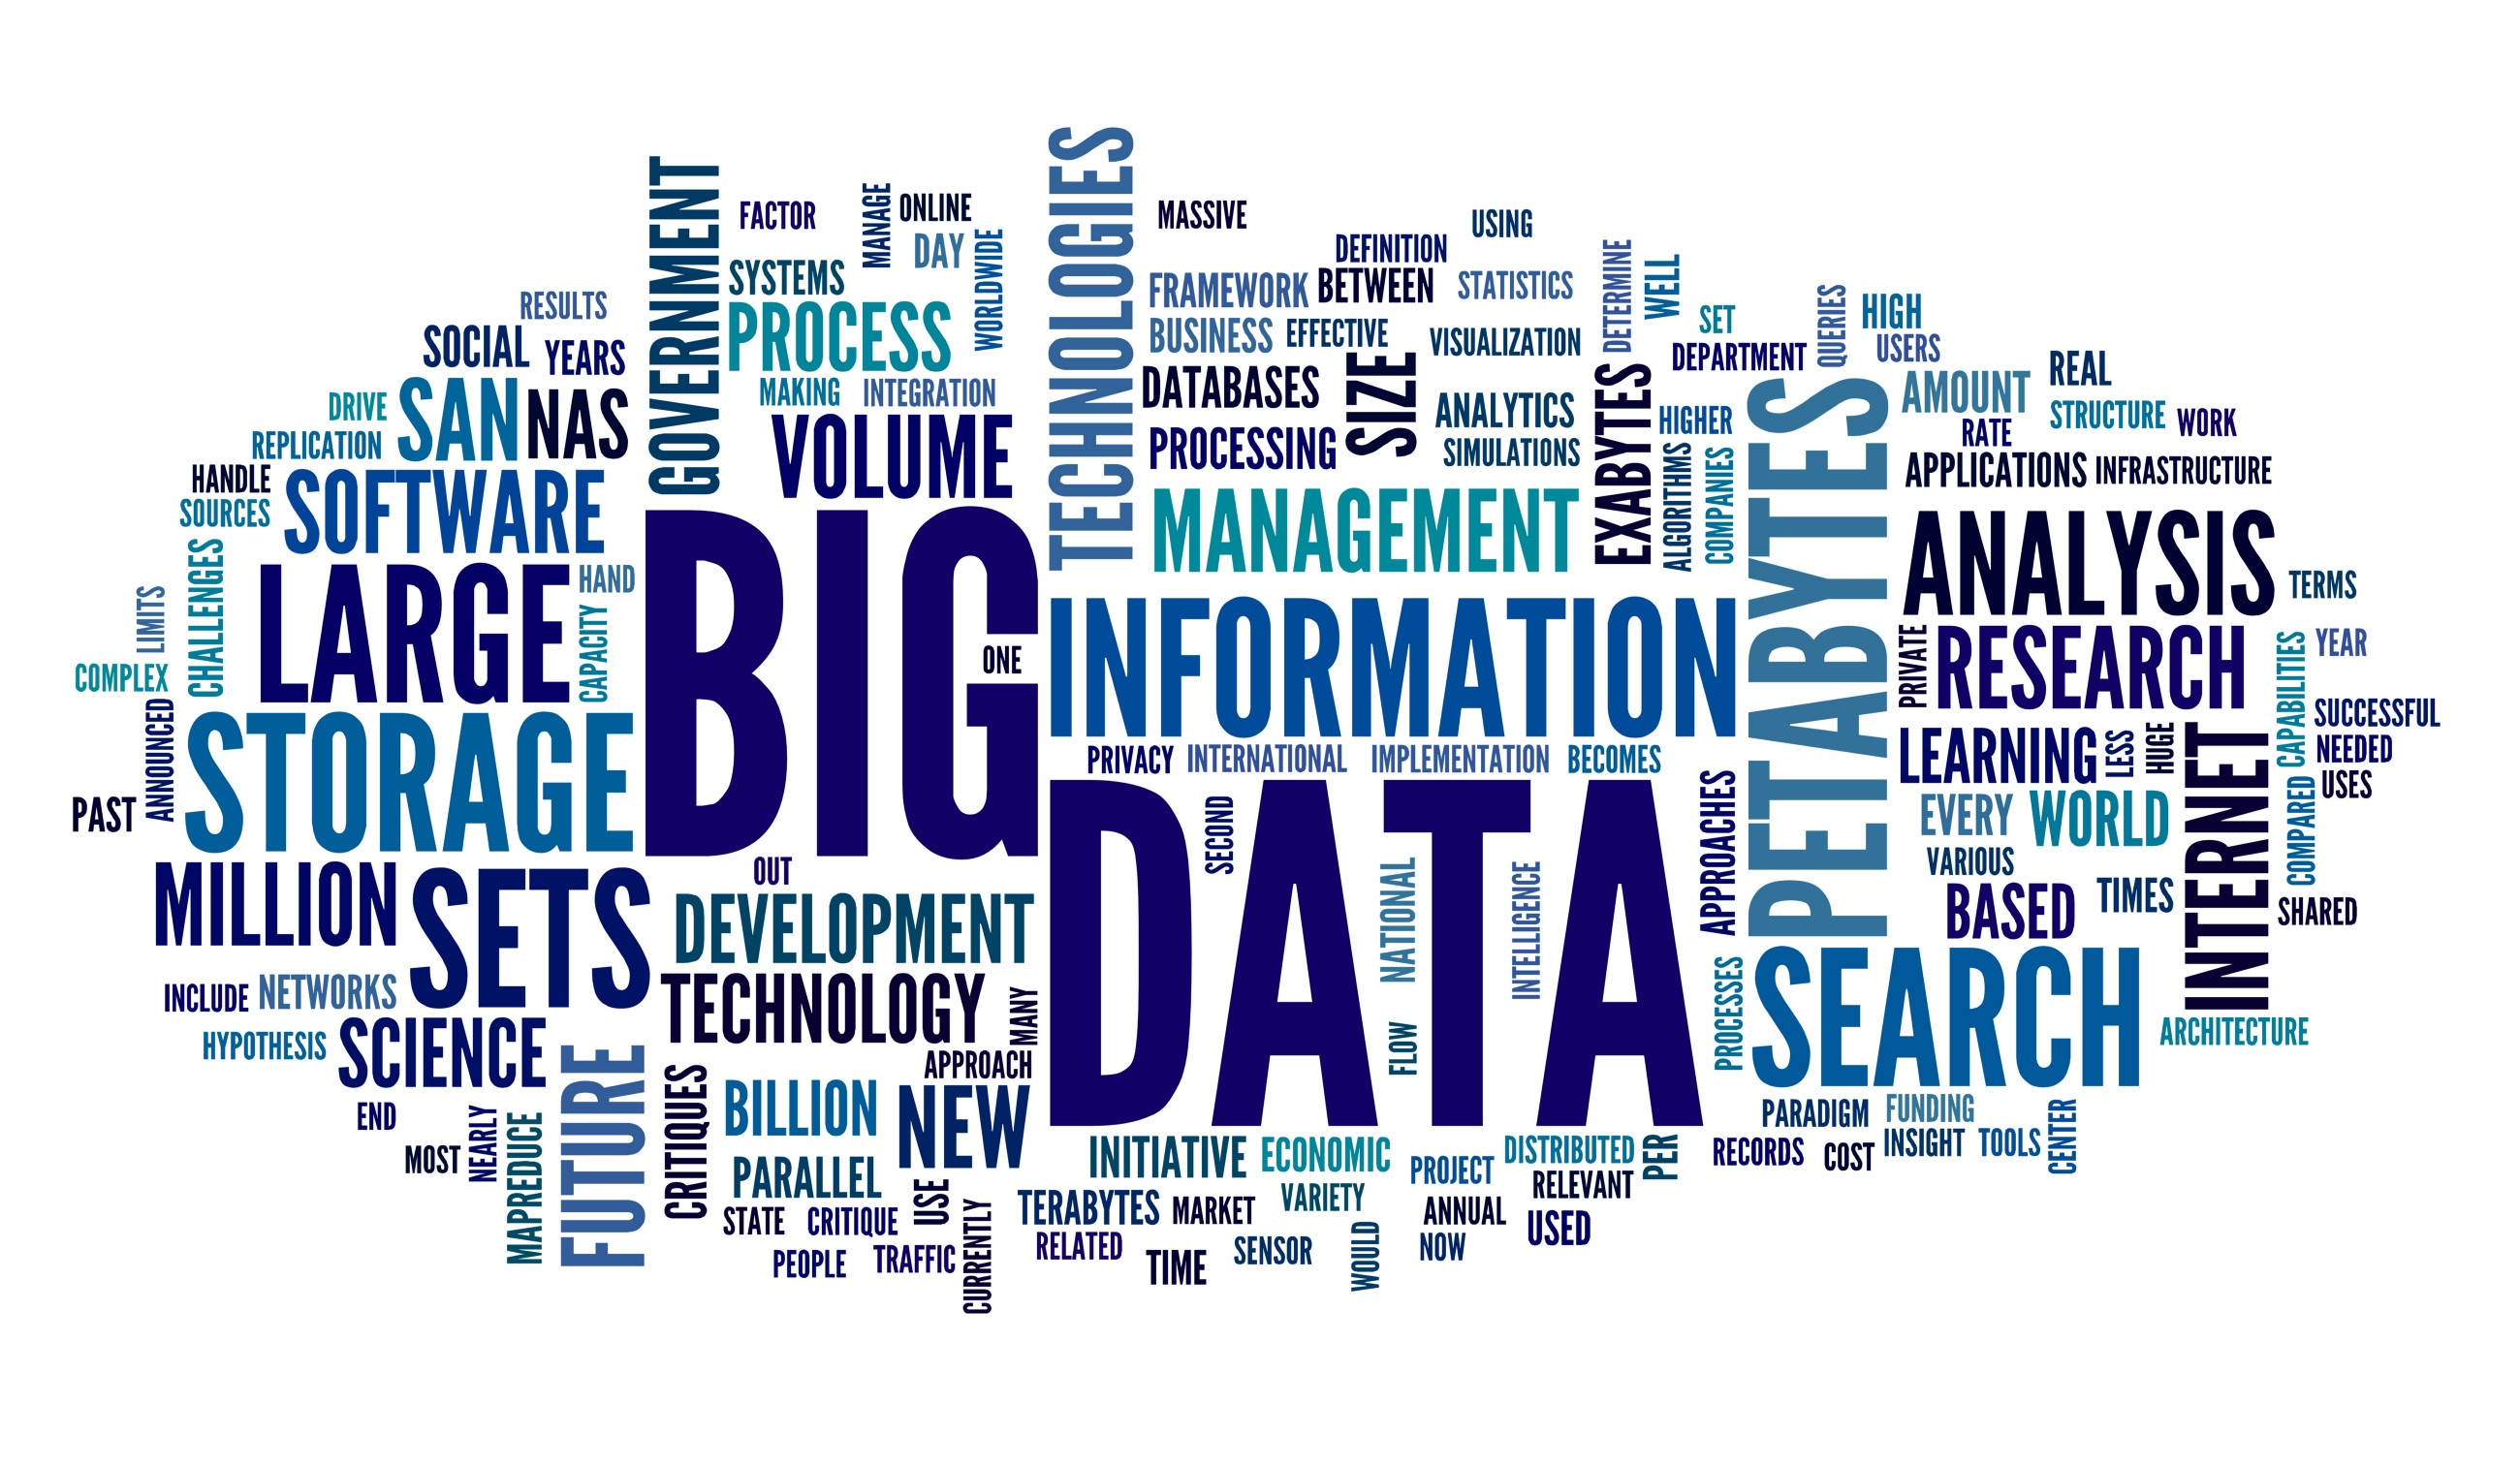 Harnessing the power of Big Data with Hadoop and Related